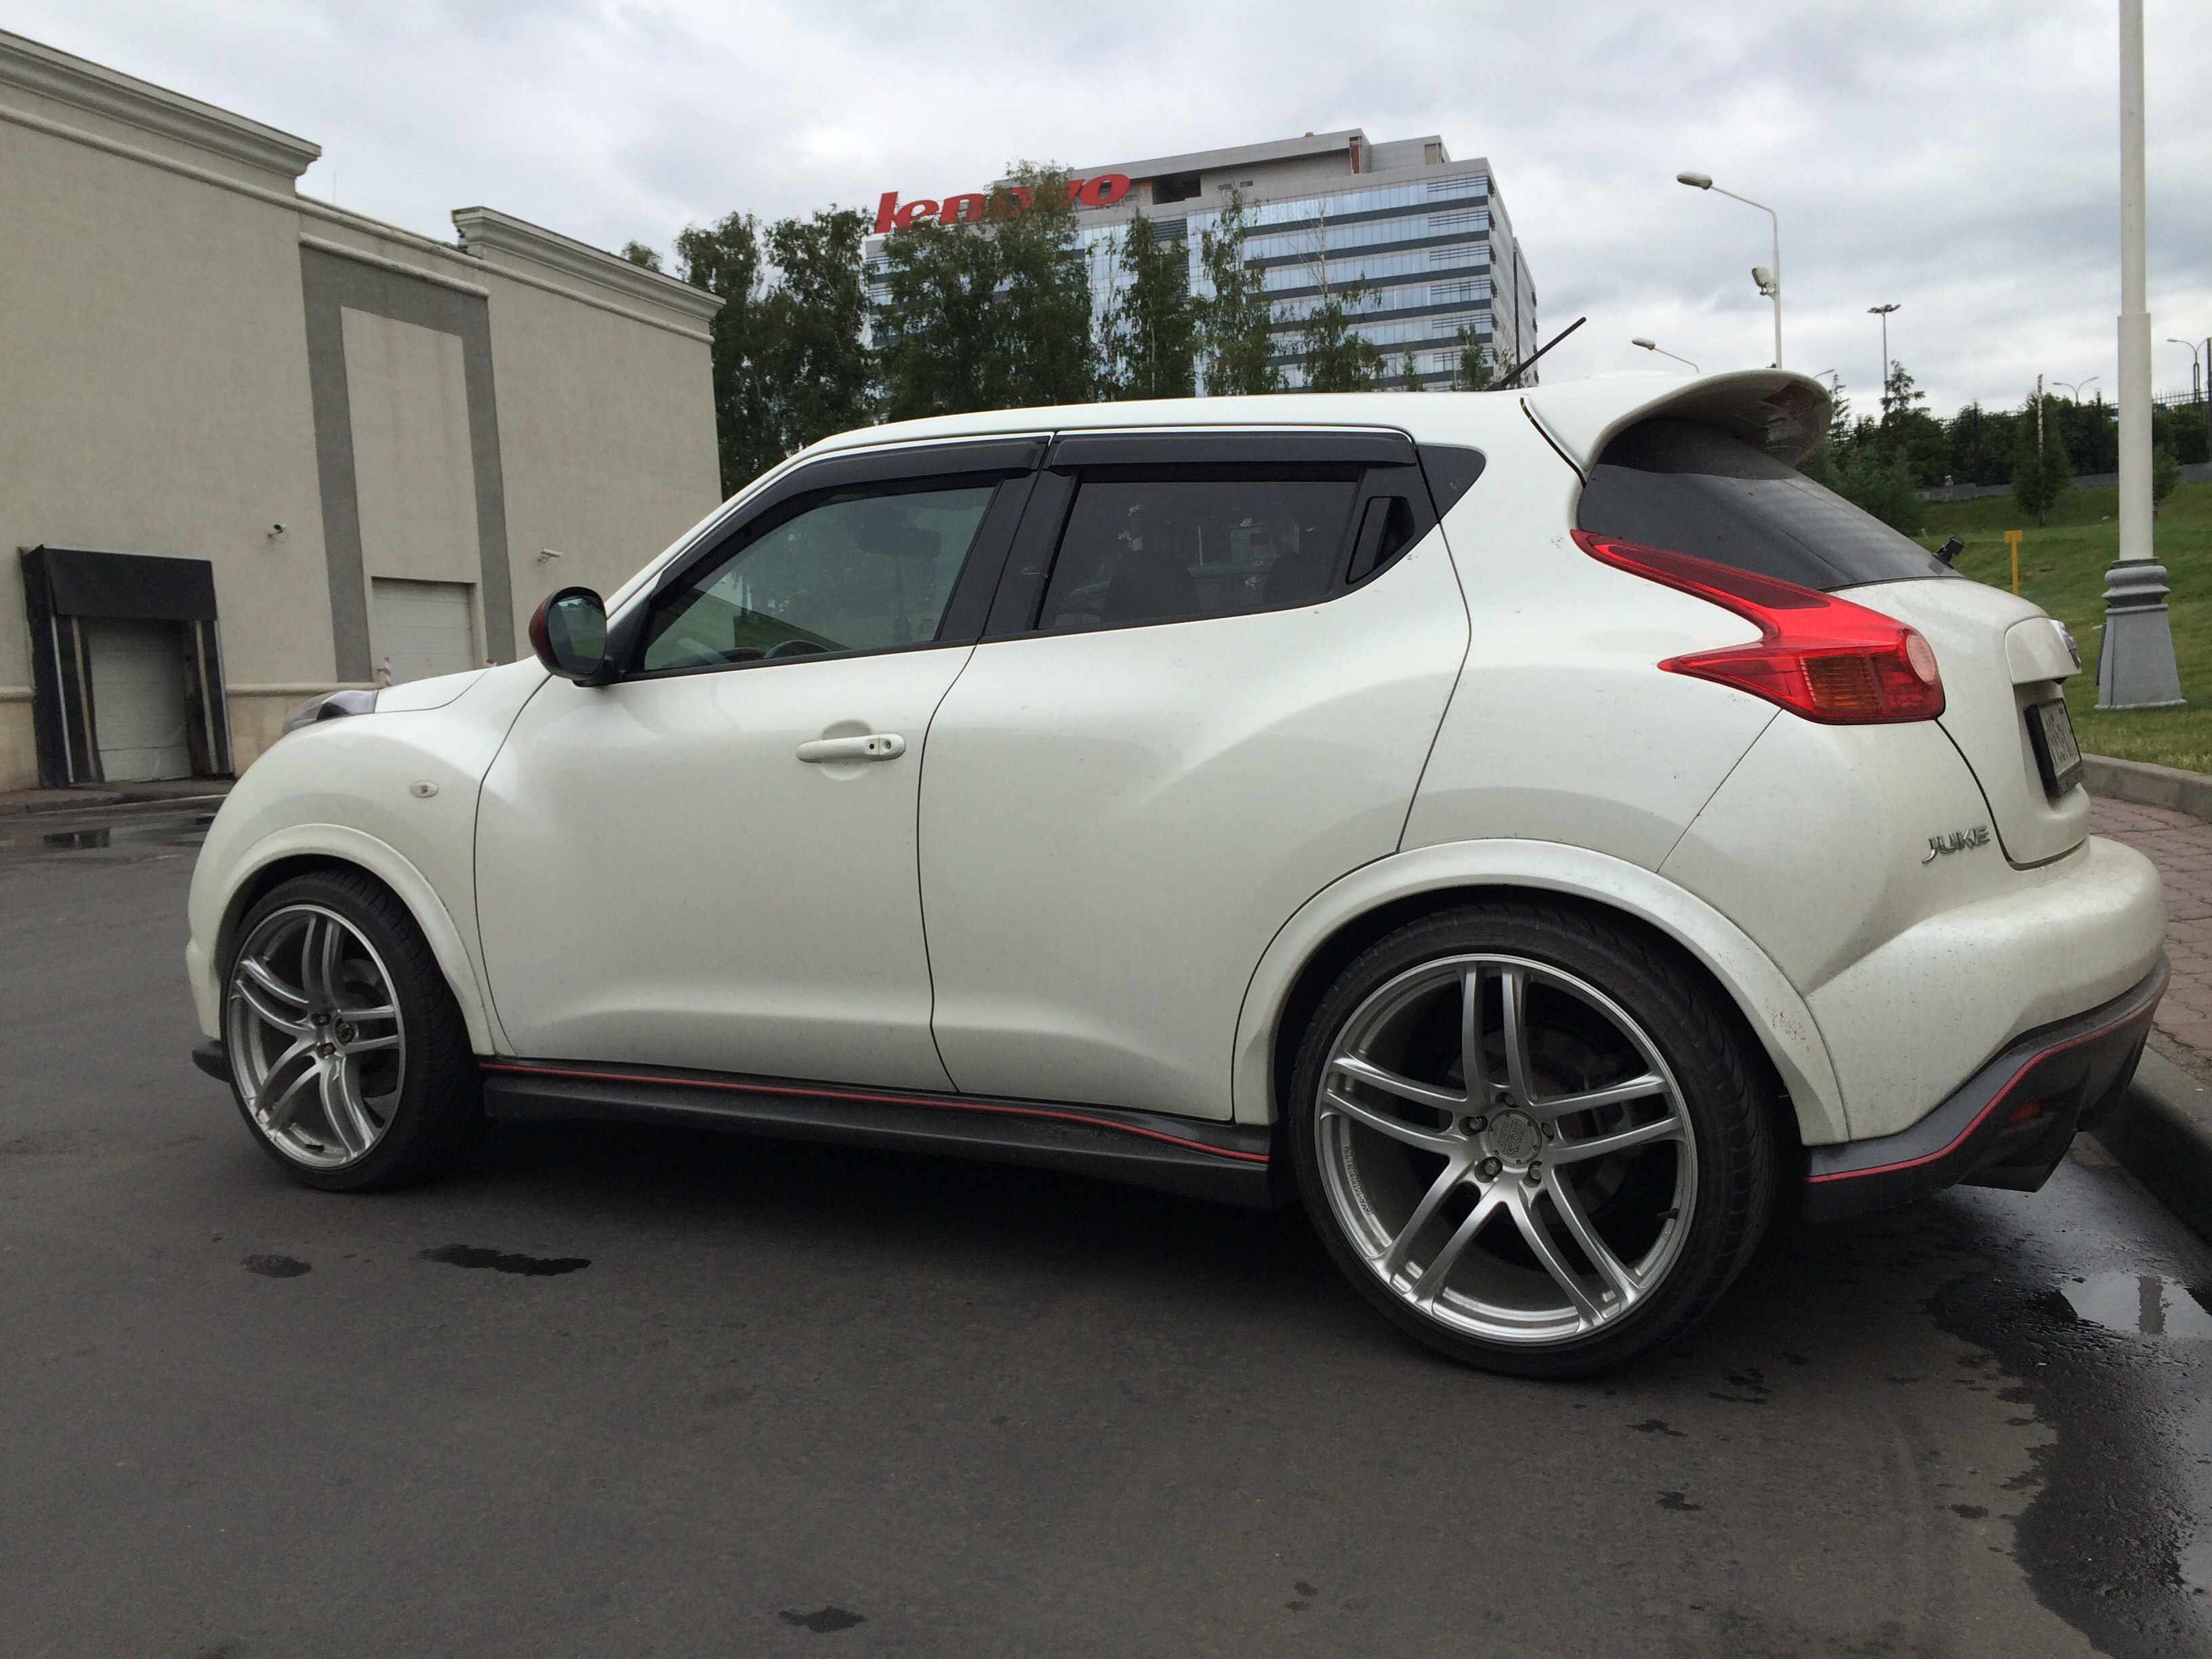 Nissan Juke custom wheels 20x9 0 ET 28 tire size 245 35 R20